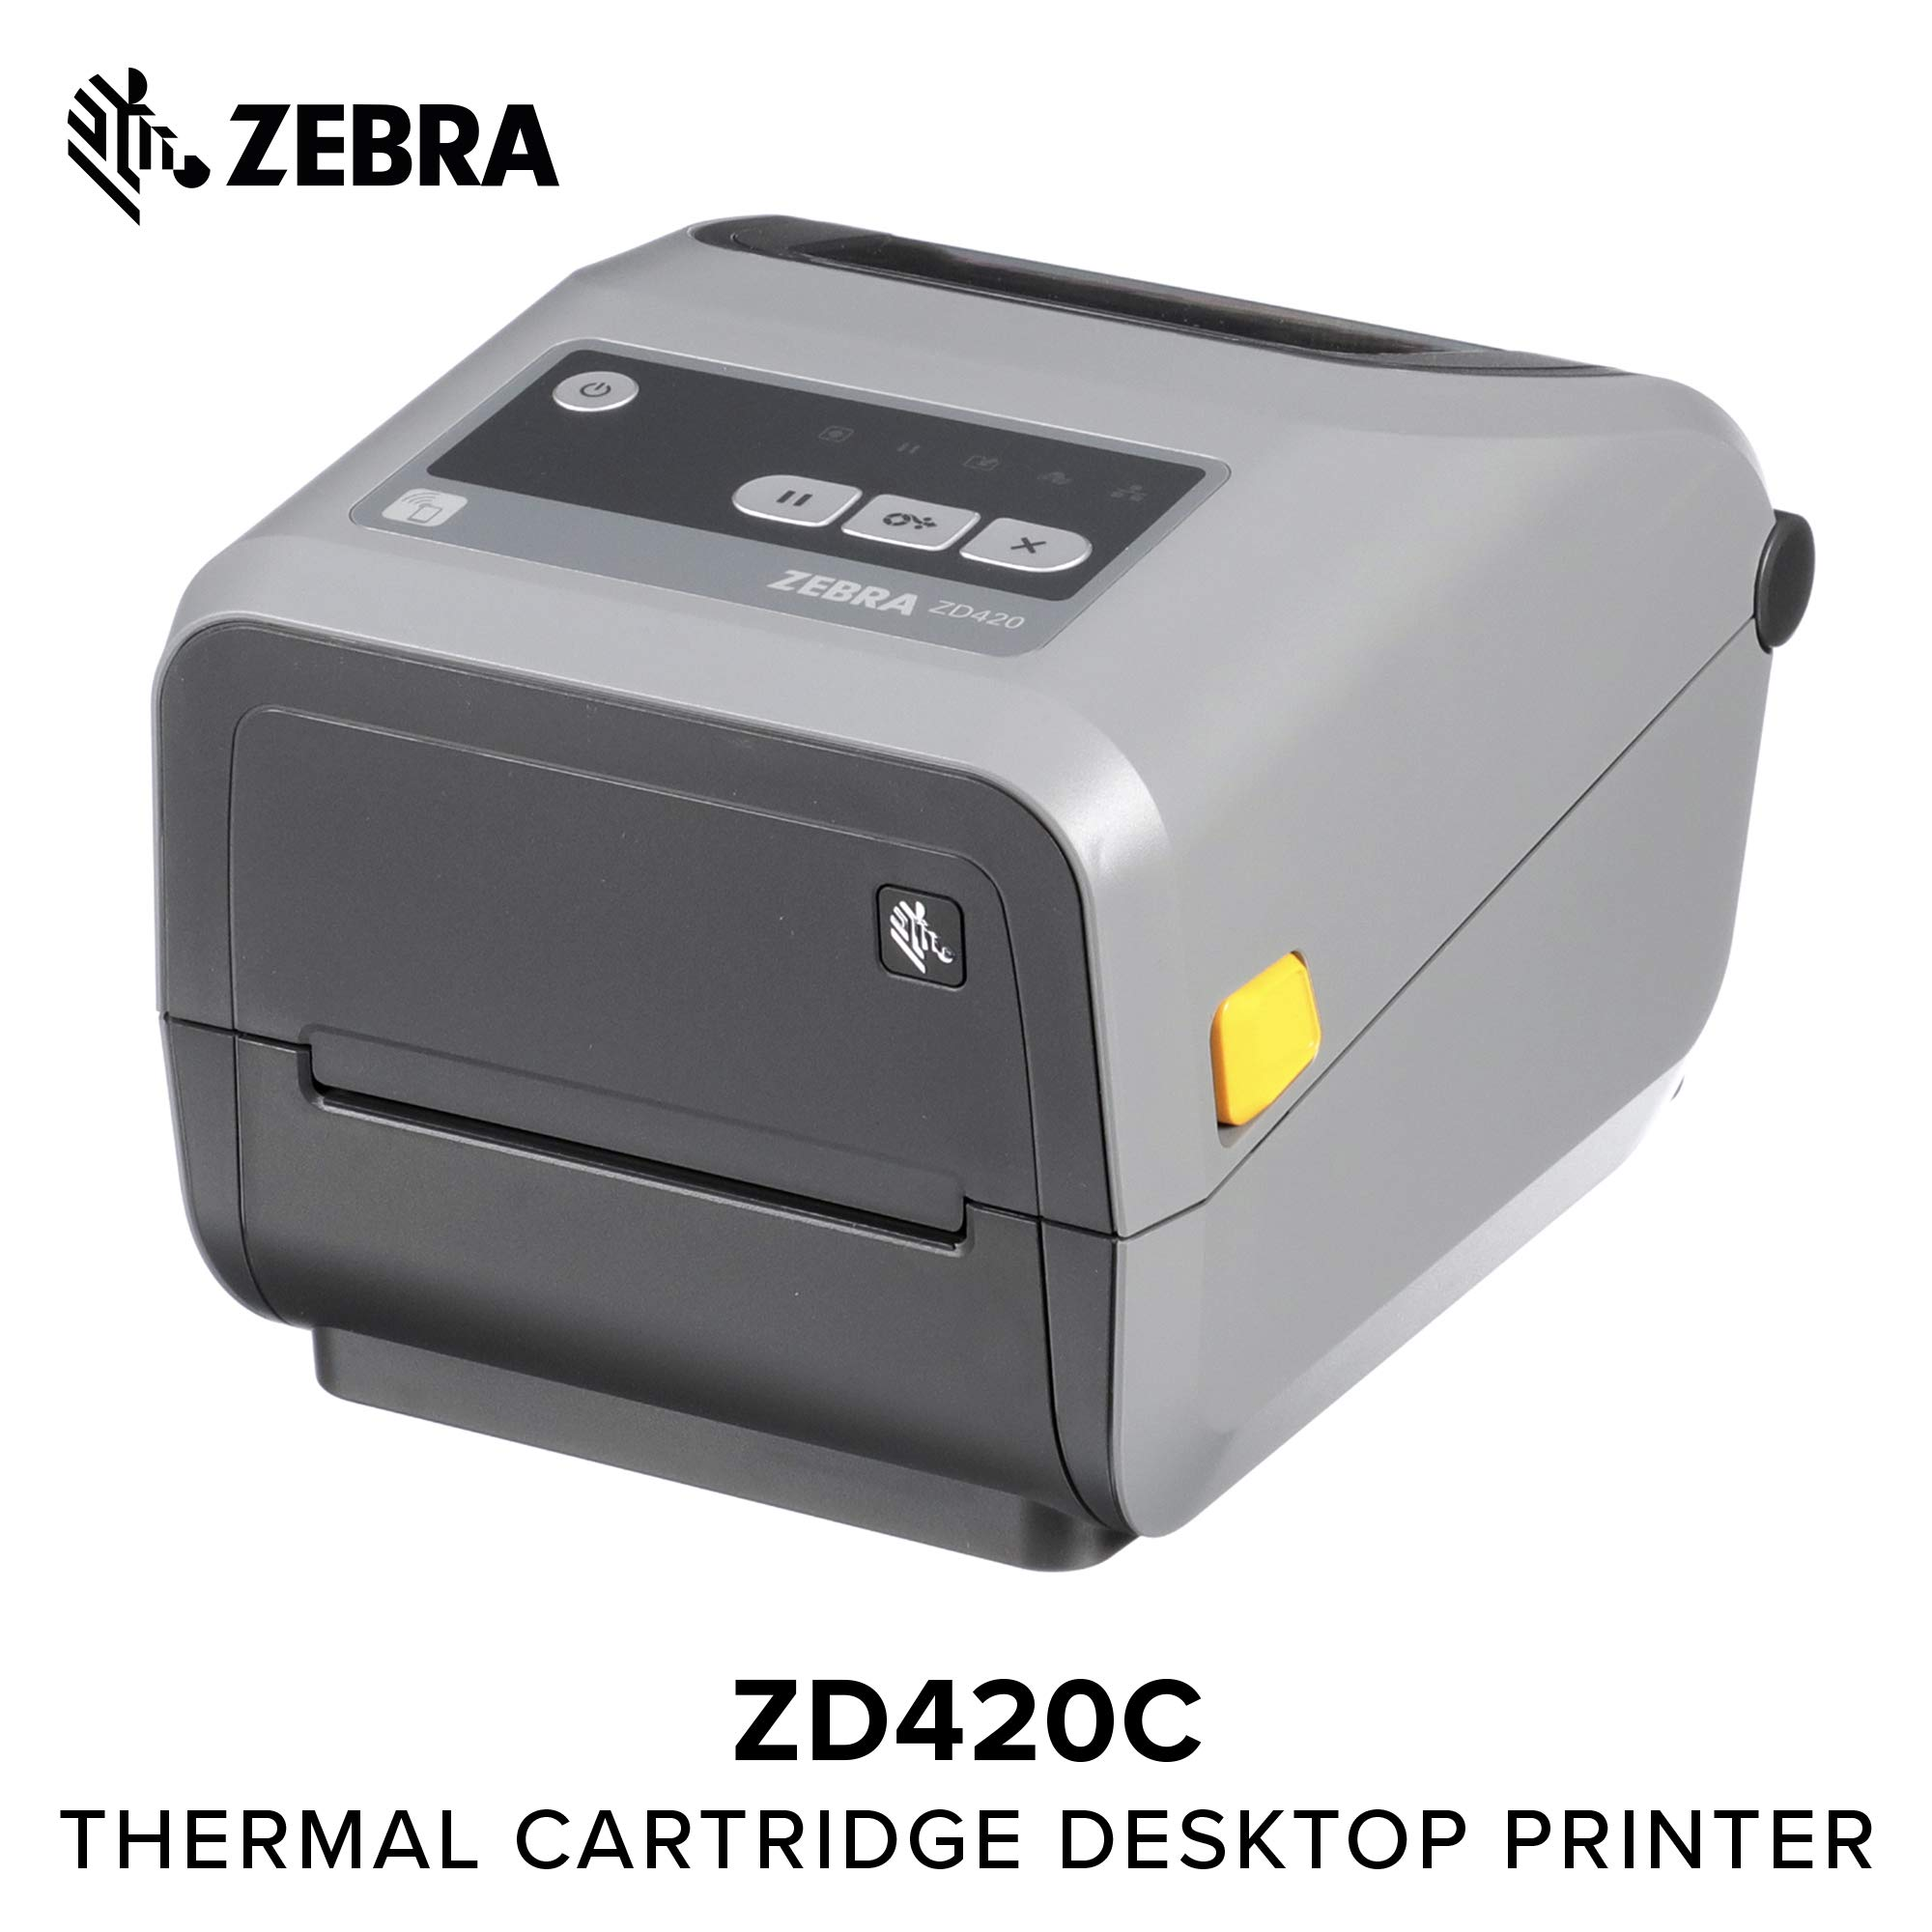 Zebra - ZD420t Thermal Transfer Desktop Printer for Labels and Barcodes - Print Width 4 in - 203 dpi - Interface: USB - ZD42042-T01000EZ by ZEBRA (Image #1)